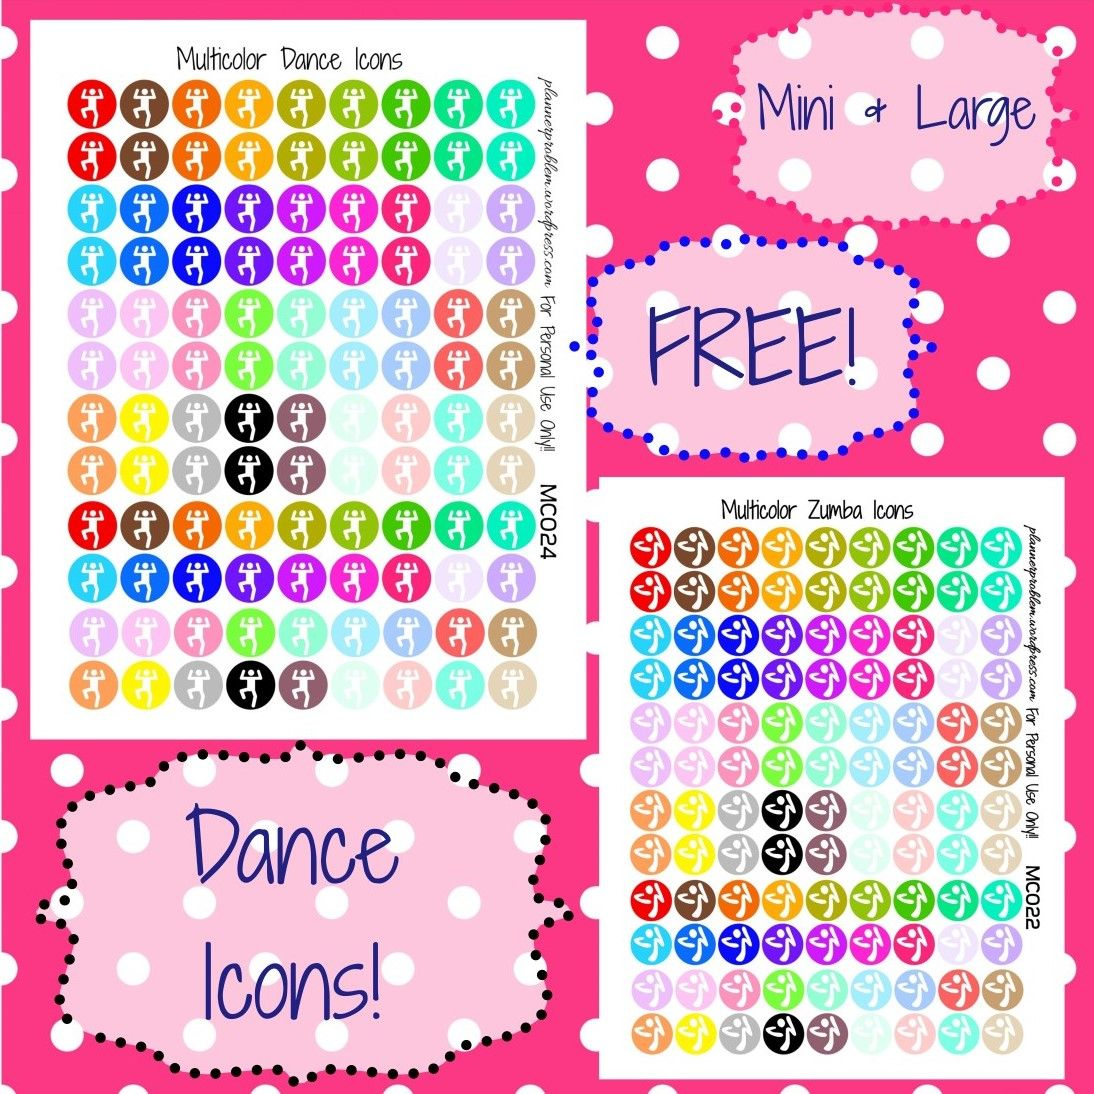 Multicolor dance zumba icons free printable planner